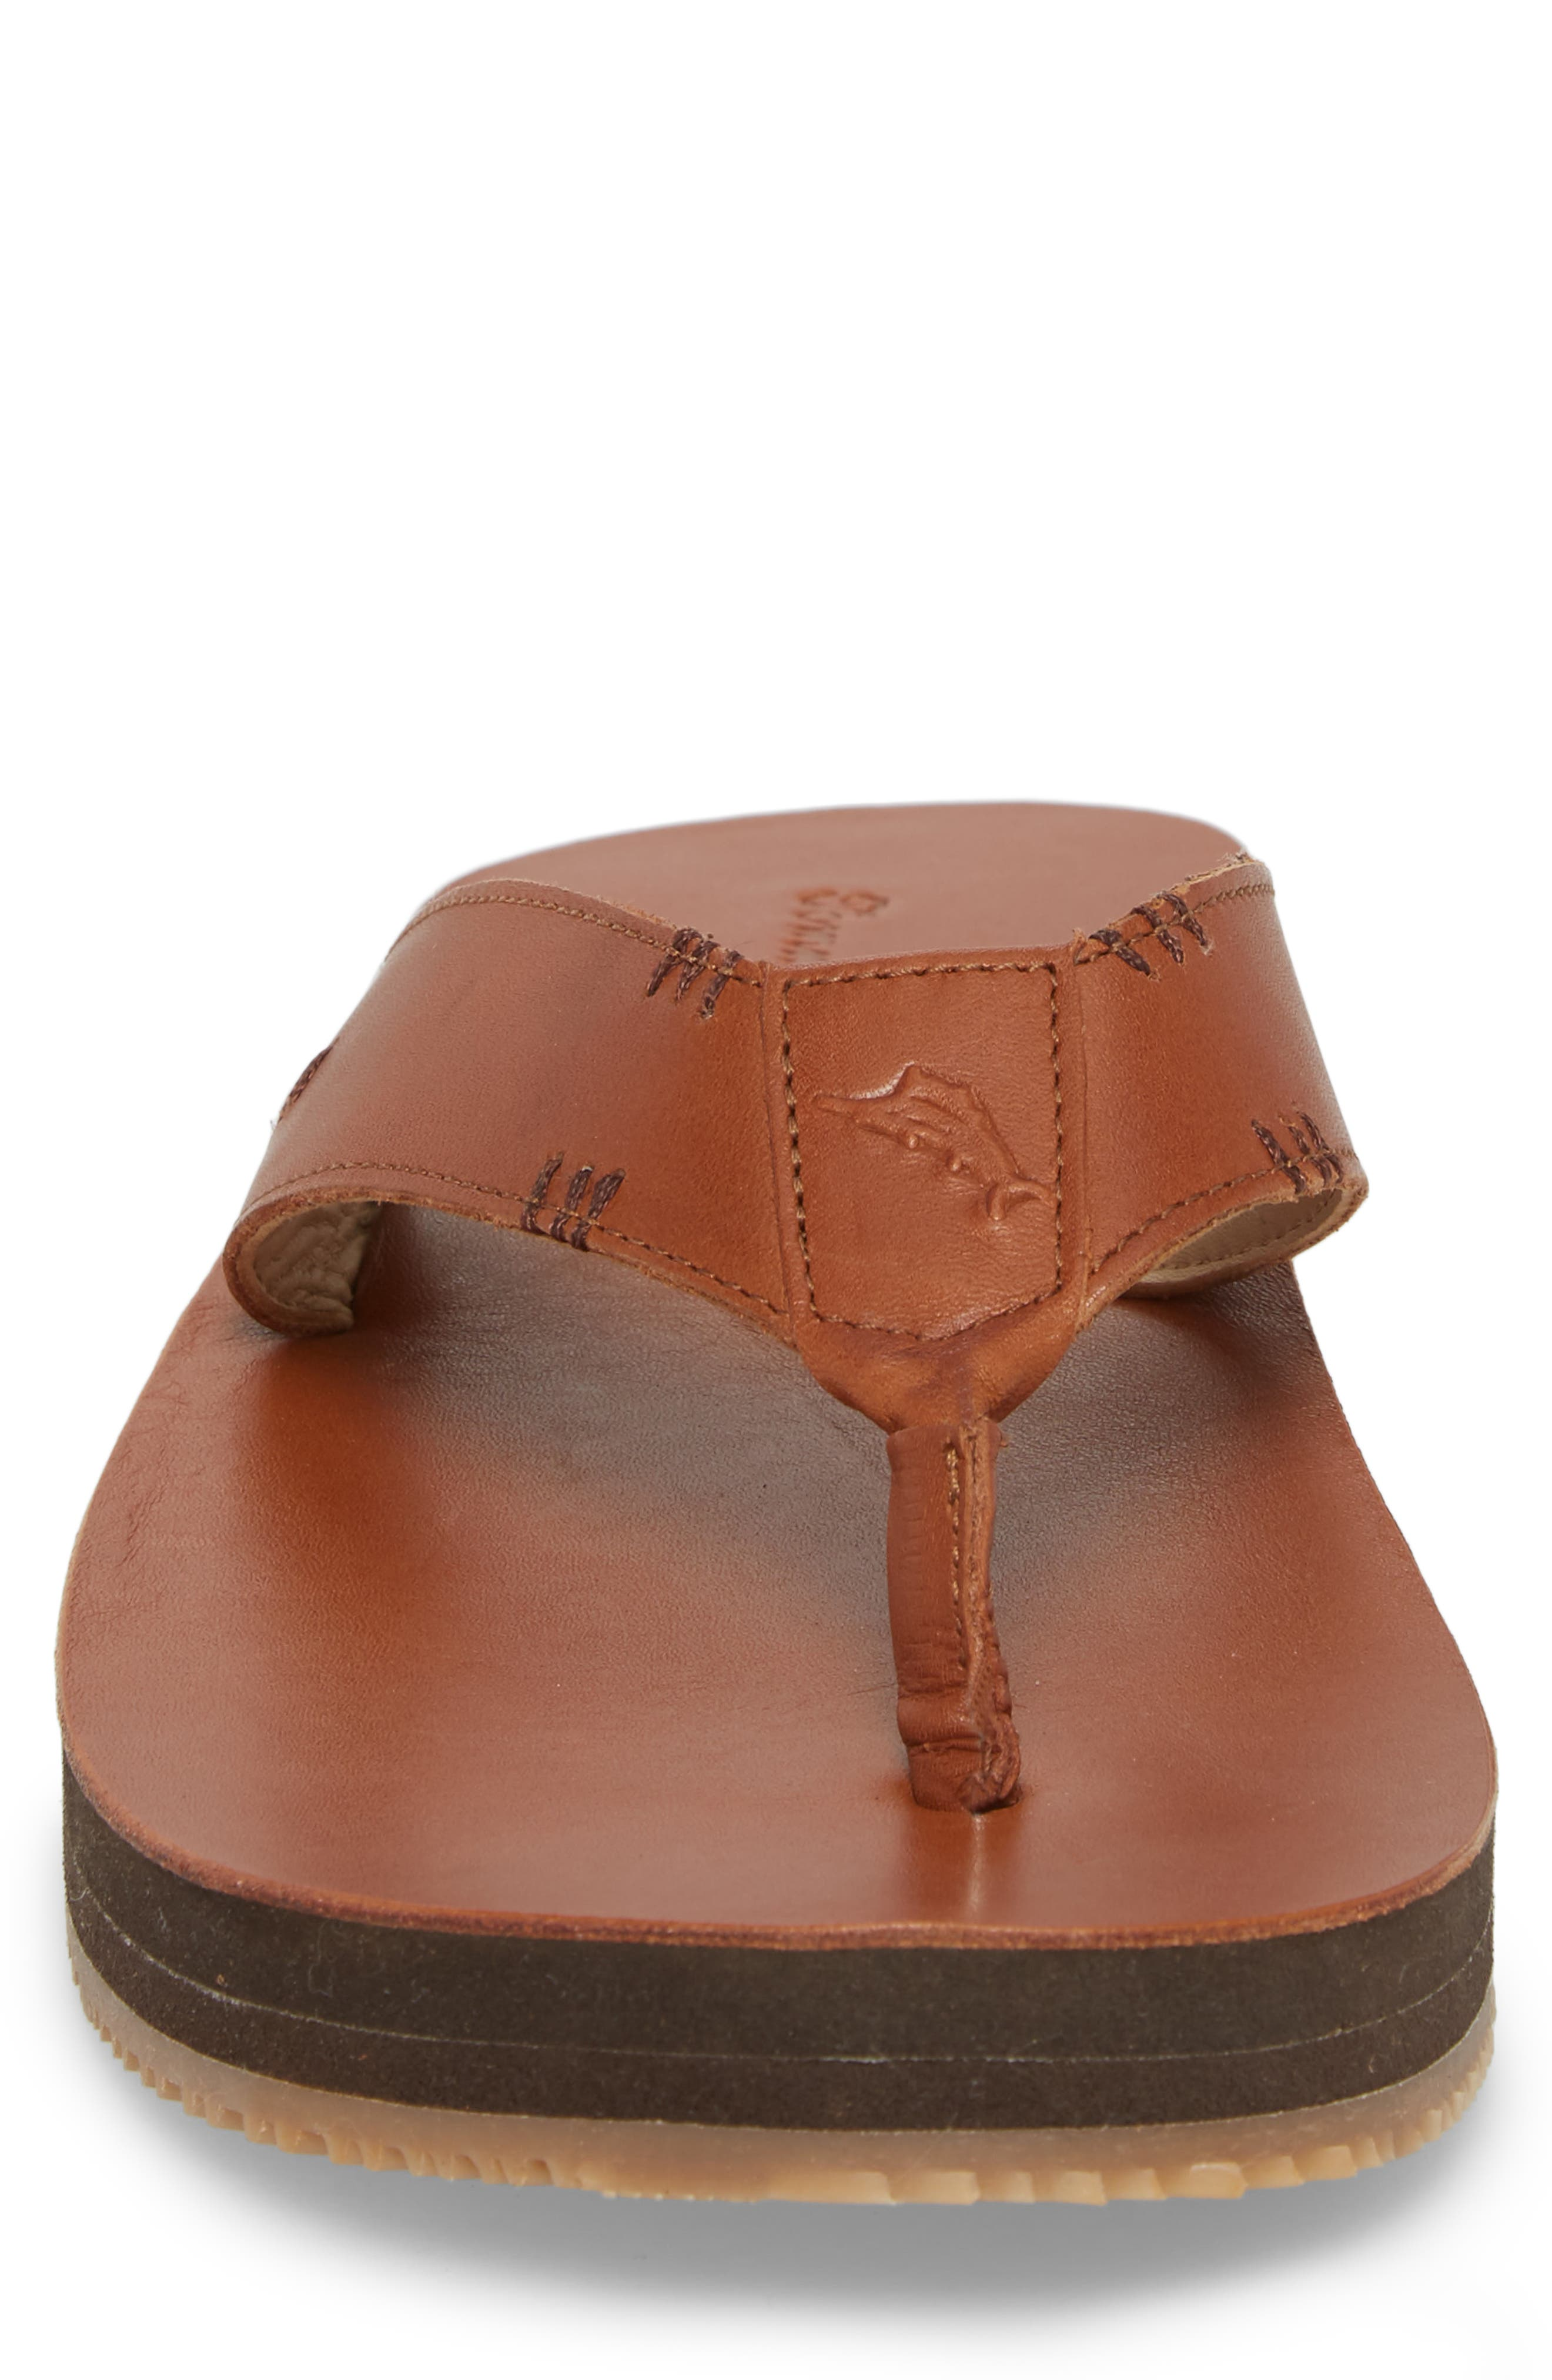 Adderly Flip Flop,                             Alternate thumbnail 4, color,                             Tan Leather